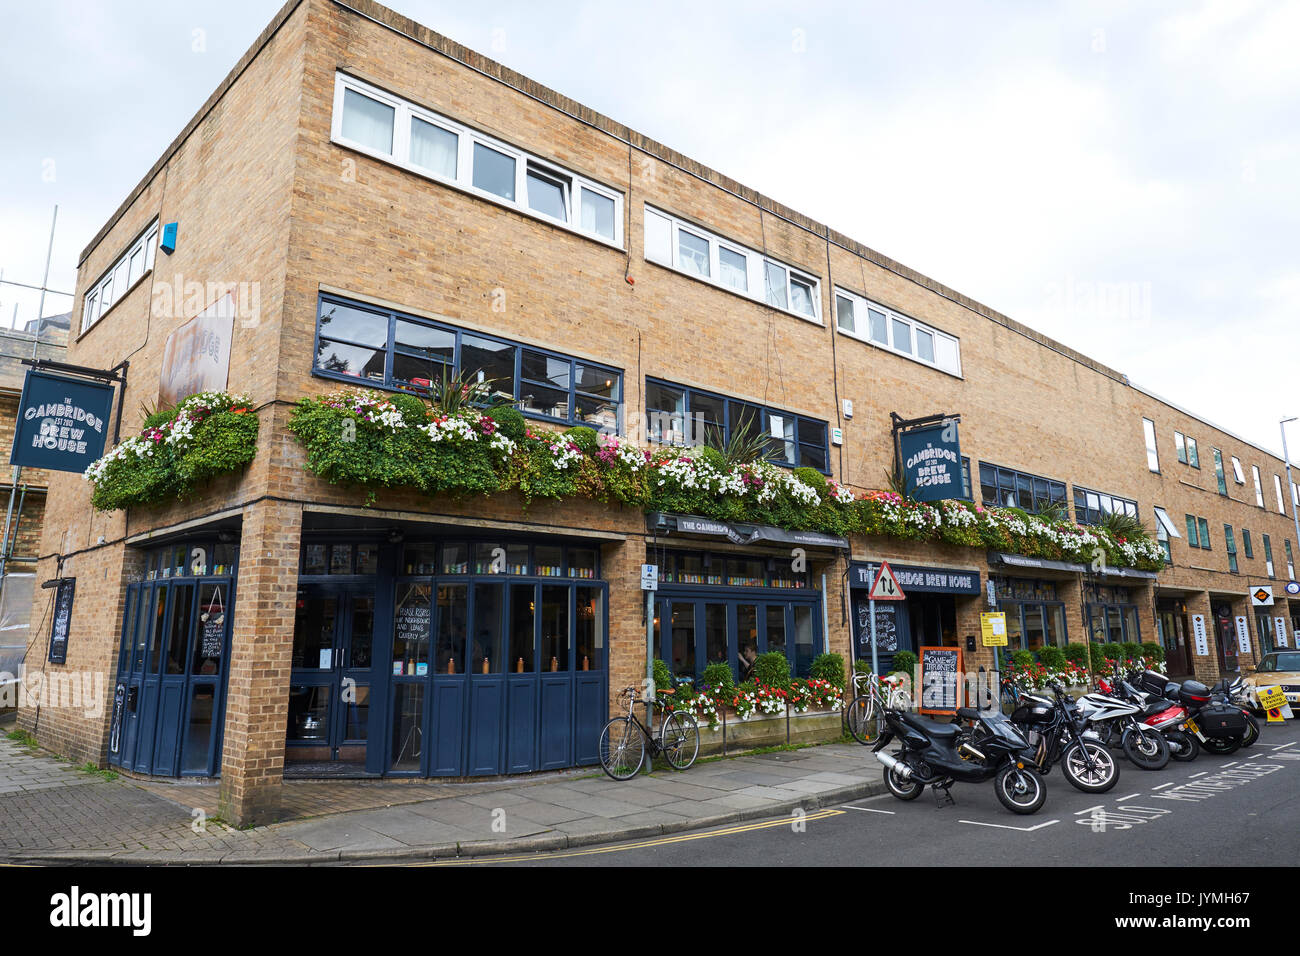 The Cambridge Brew House A Pub With Its Own Micro Brewery, King Street, Cambridge, UK Stock Photo